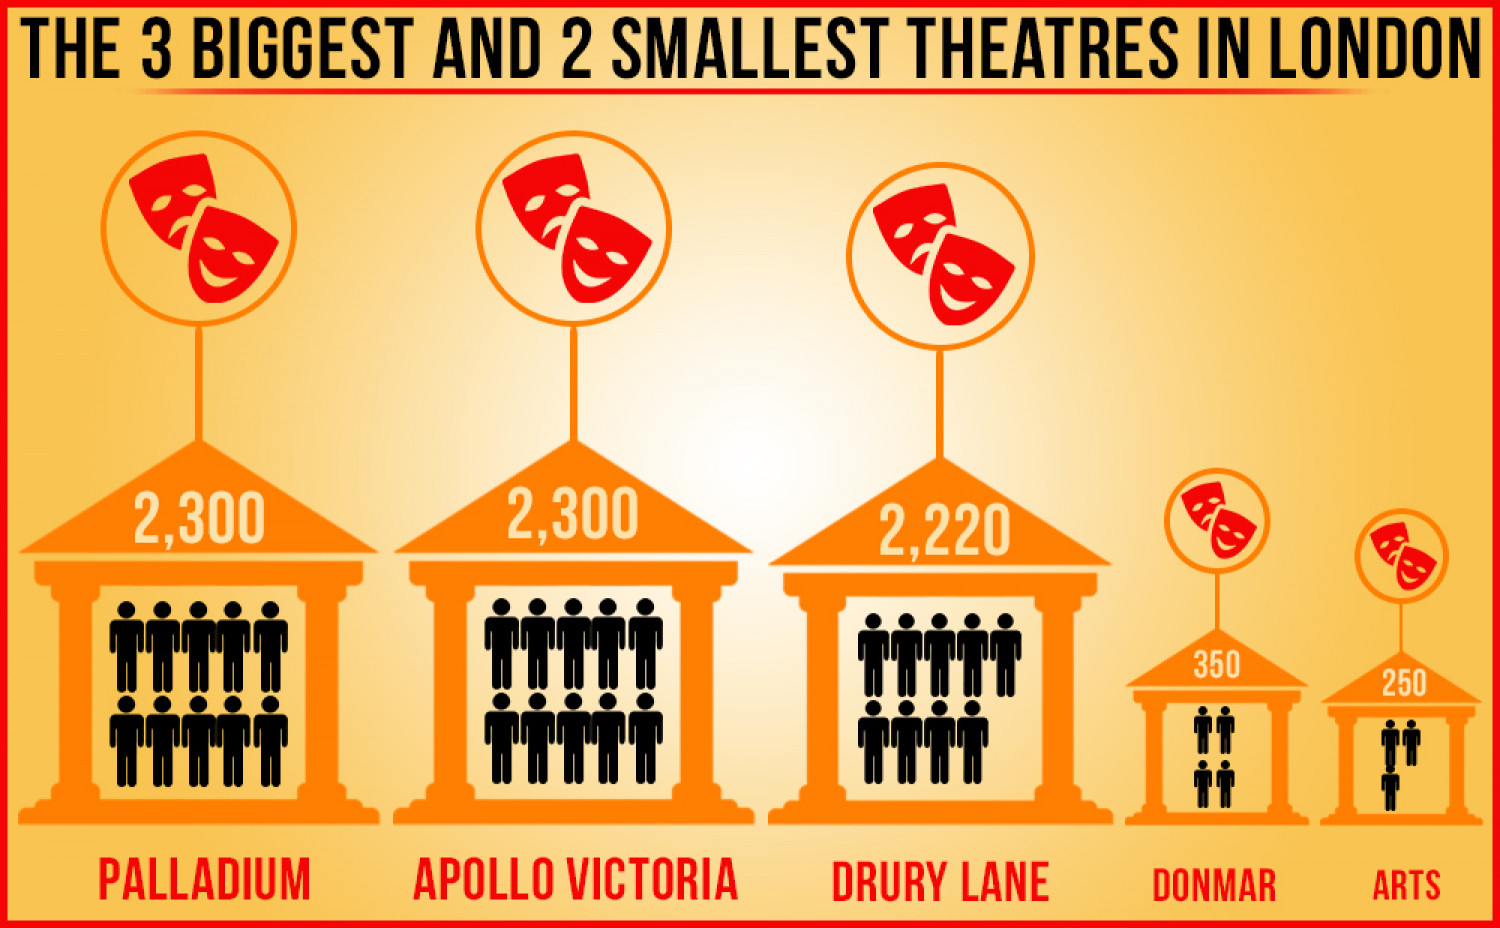 The 3 biggest and 2 smallest theaters in London Infographic